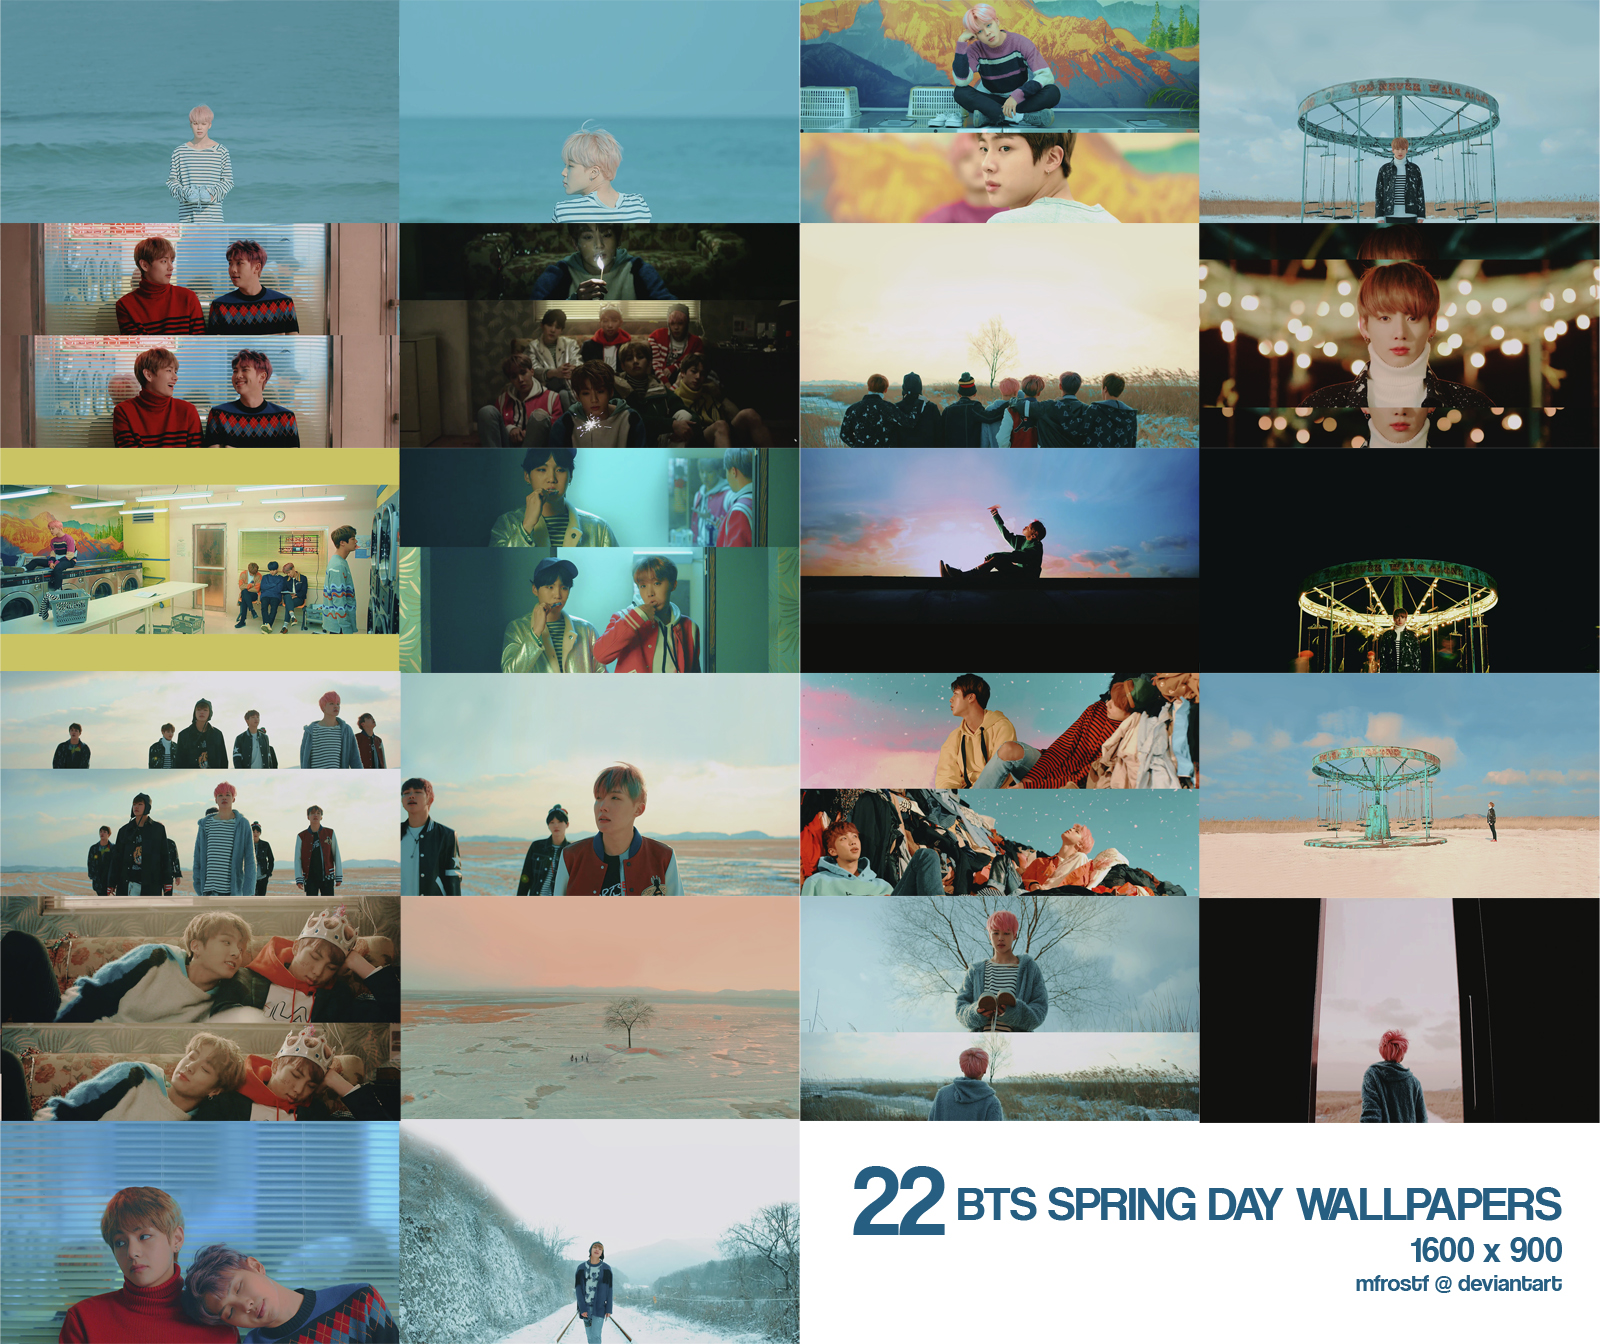 BTS - Spring Day Desktop Wallpapers by mfrostf on DeviantArt